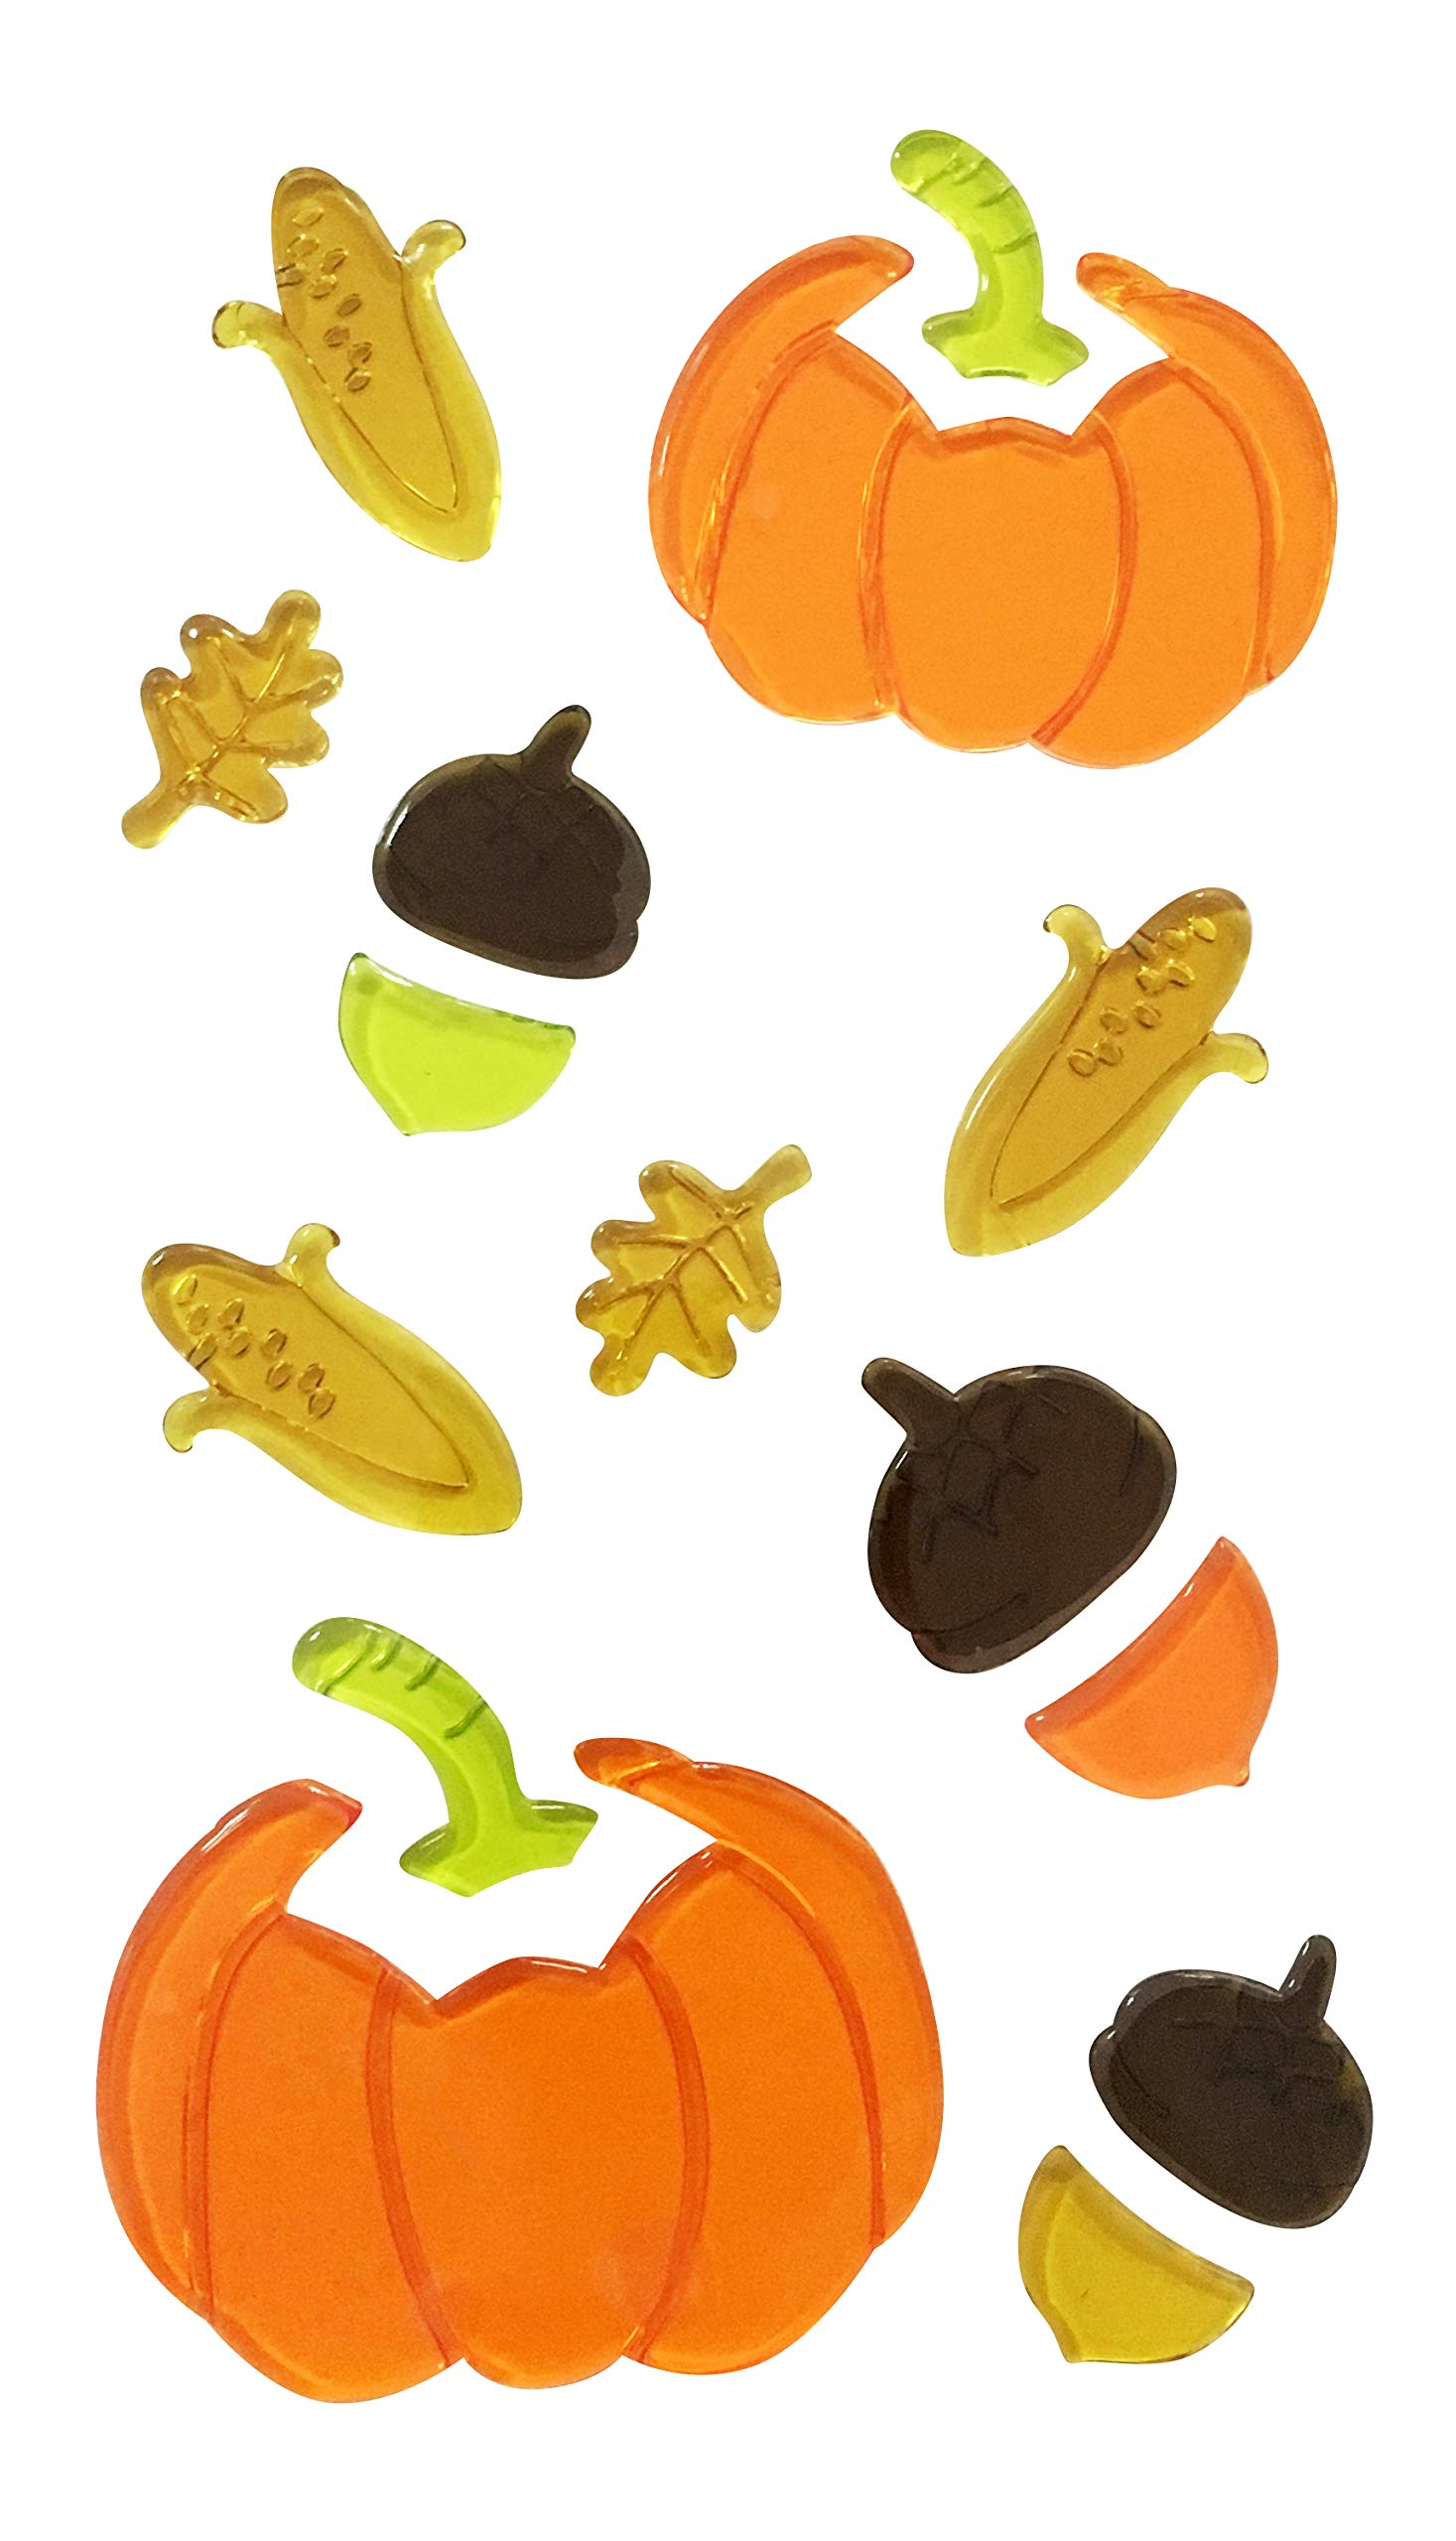 HL Gel Pumpkin Window Cling (Pack of 2) DCR-518025 by H (Image #1)